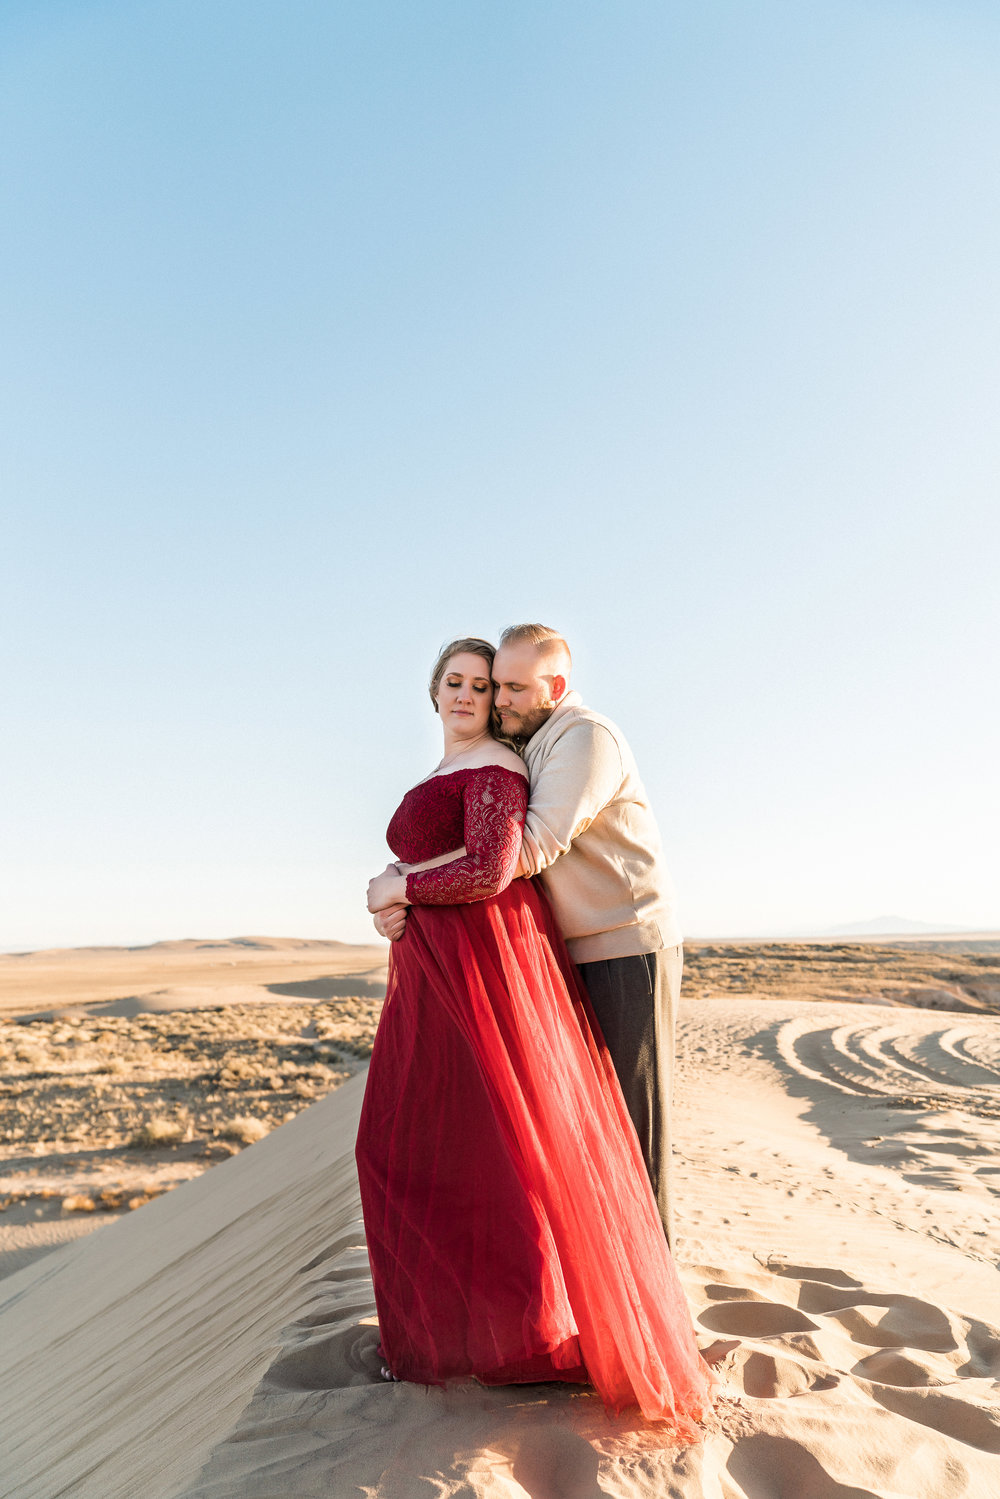 NewMexico-Sand-Dunes-Engagement-Carissa-and-Ben-1153.jpg